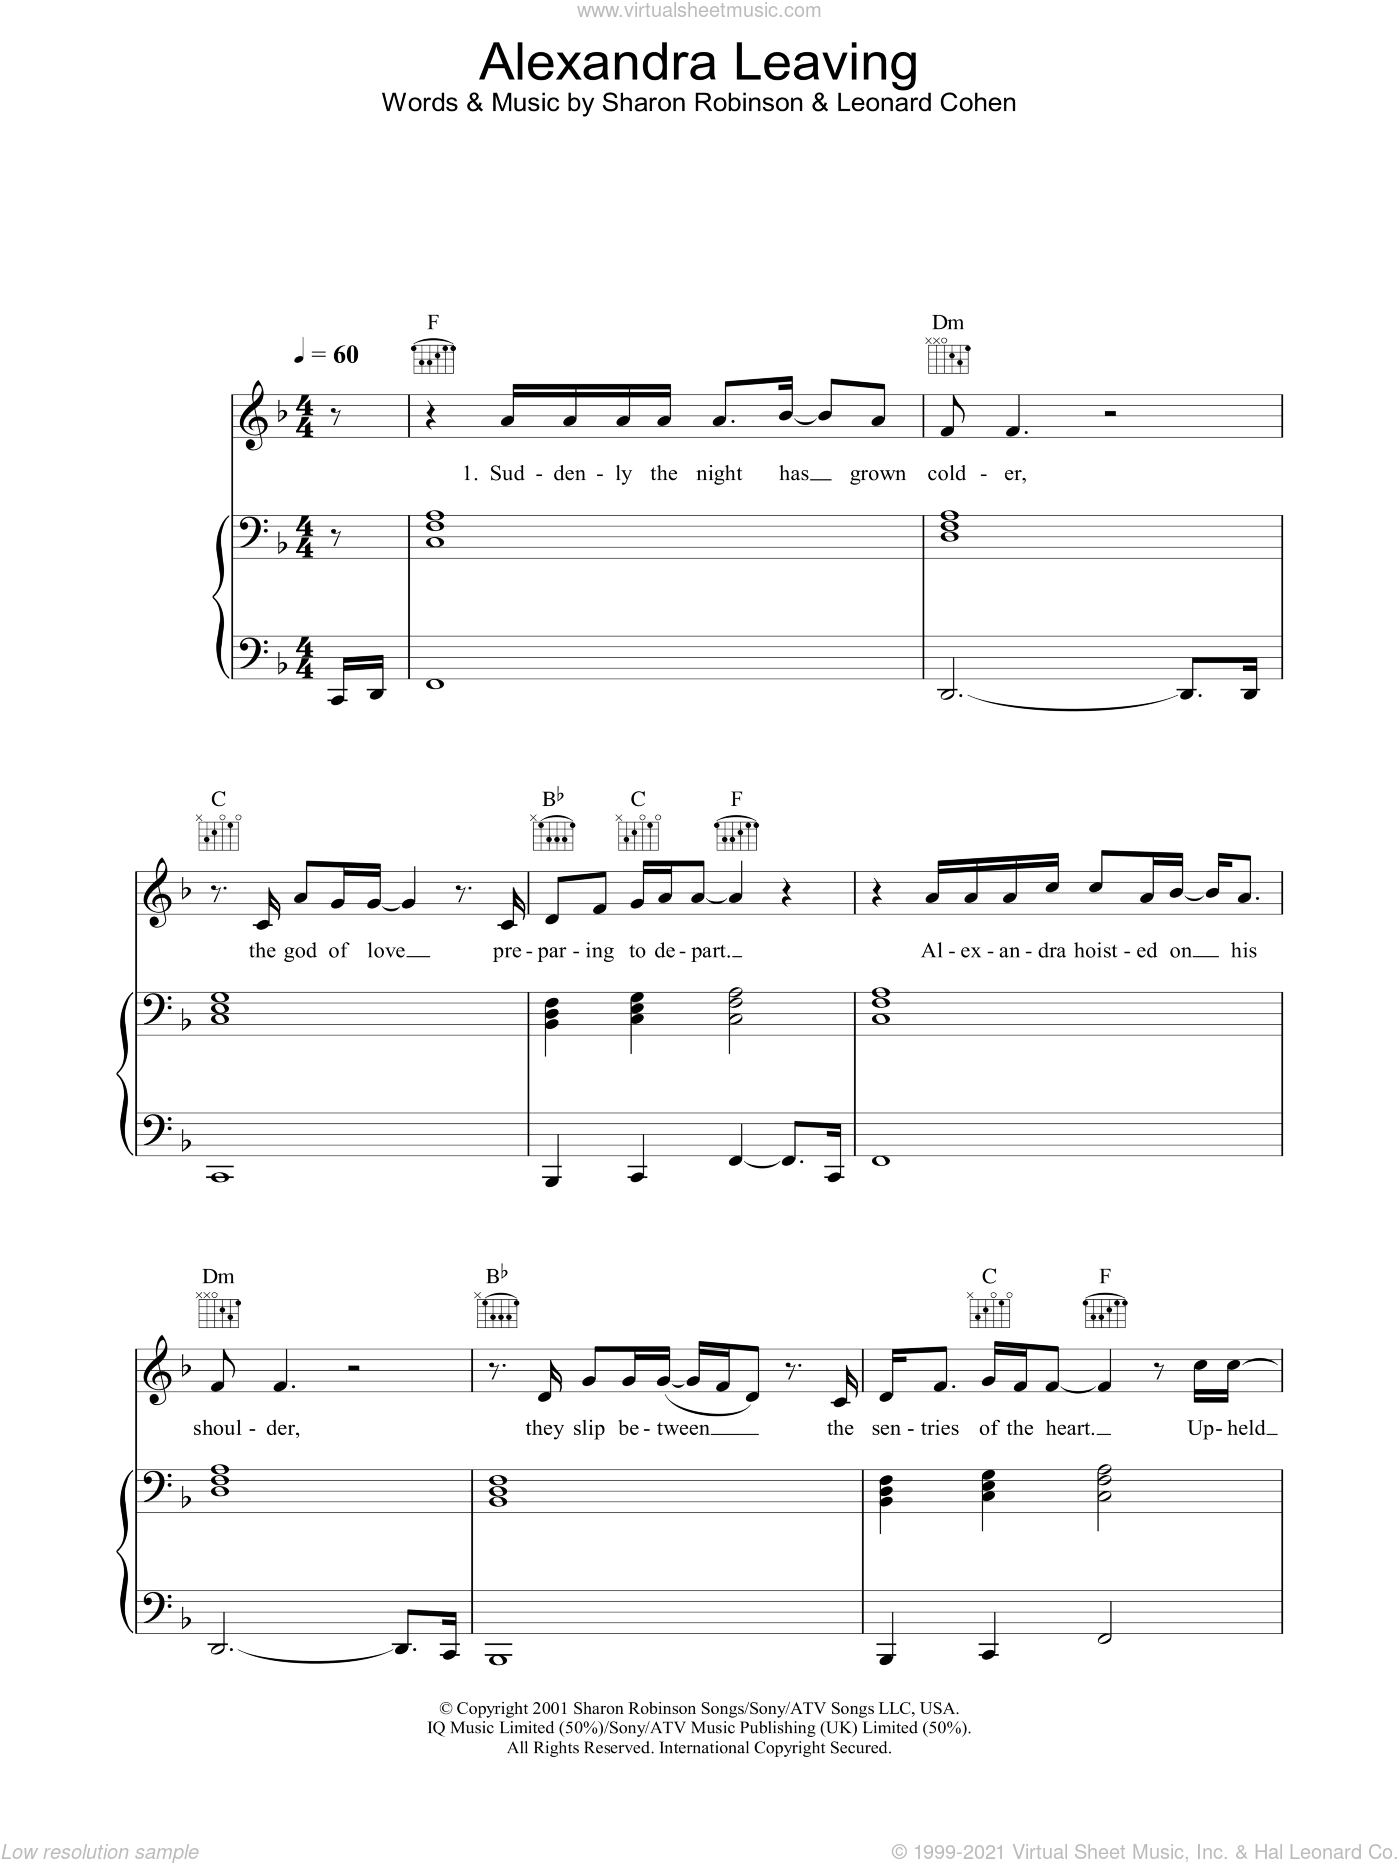 Alexandra Leaving sheet music for voice, piano or guitar by Leonard Cohen and Sharon Robinson, intermediate skill level